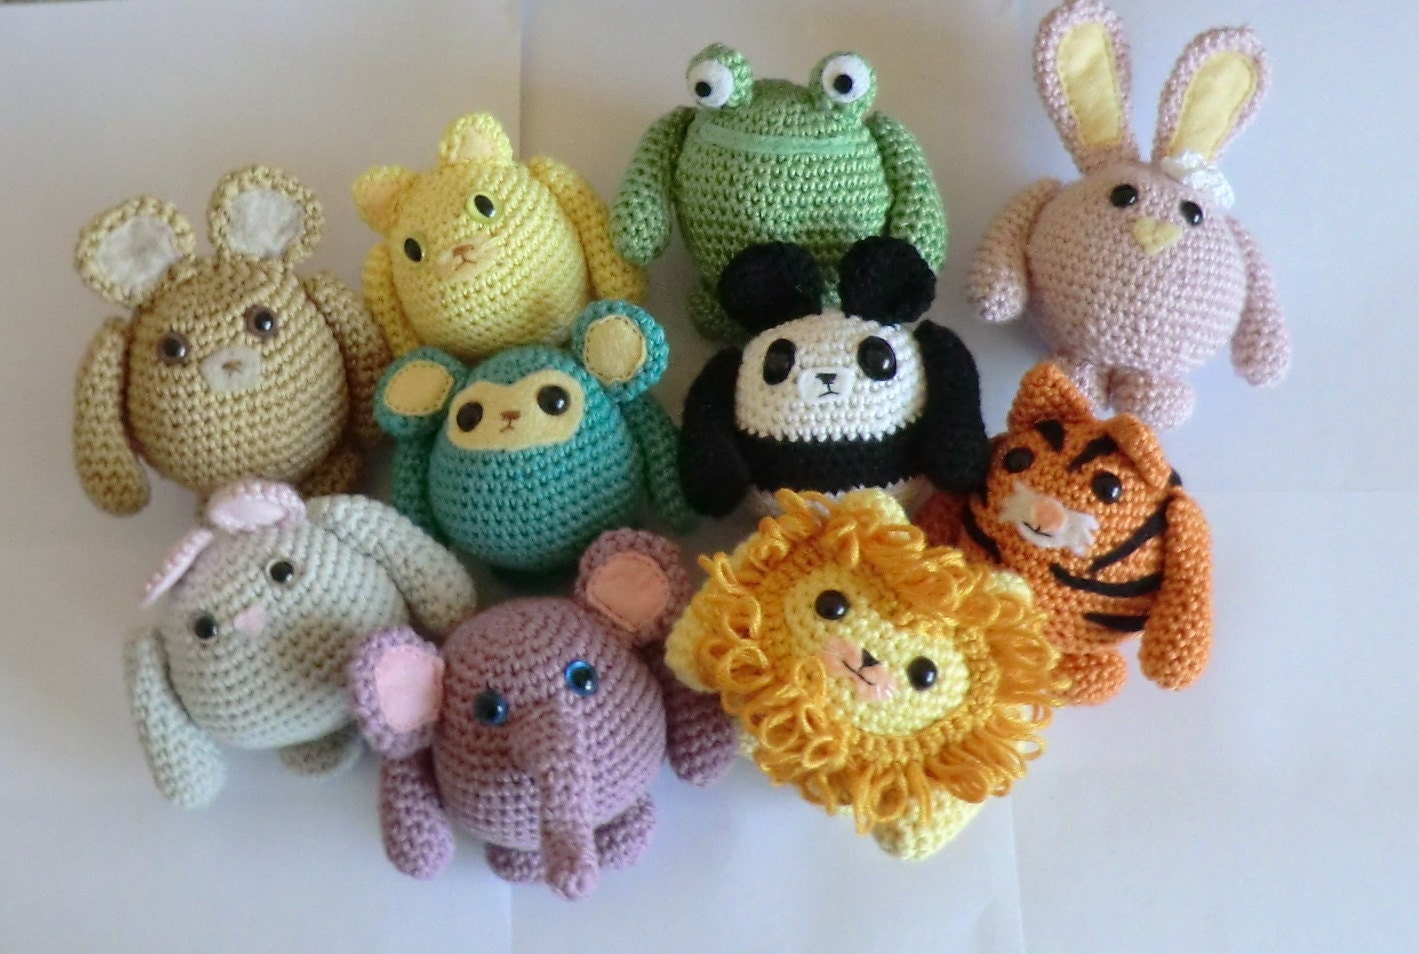 Amigurumi Free Patterns Knitting : Fat friends animal amigurumi crochet patterns by ...